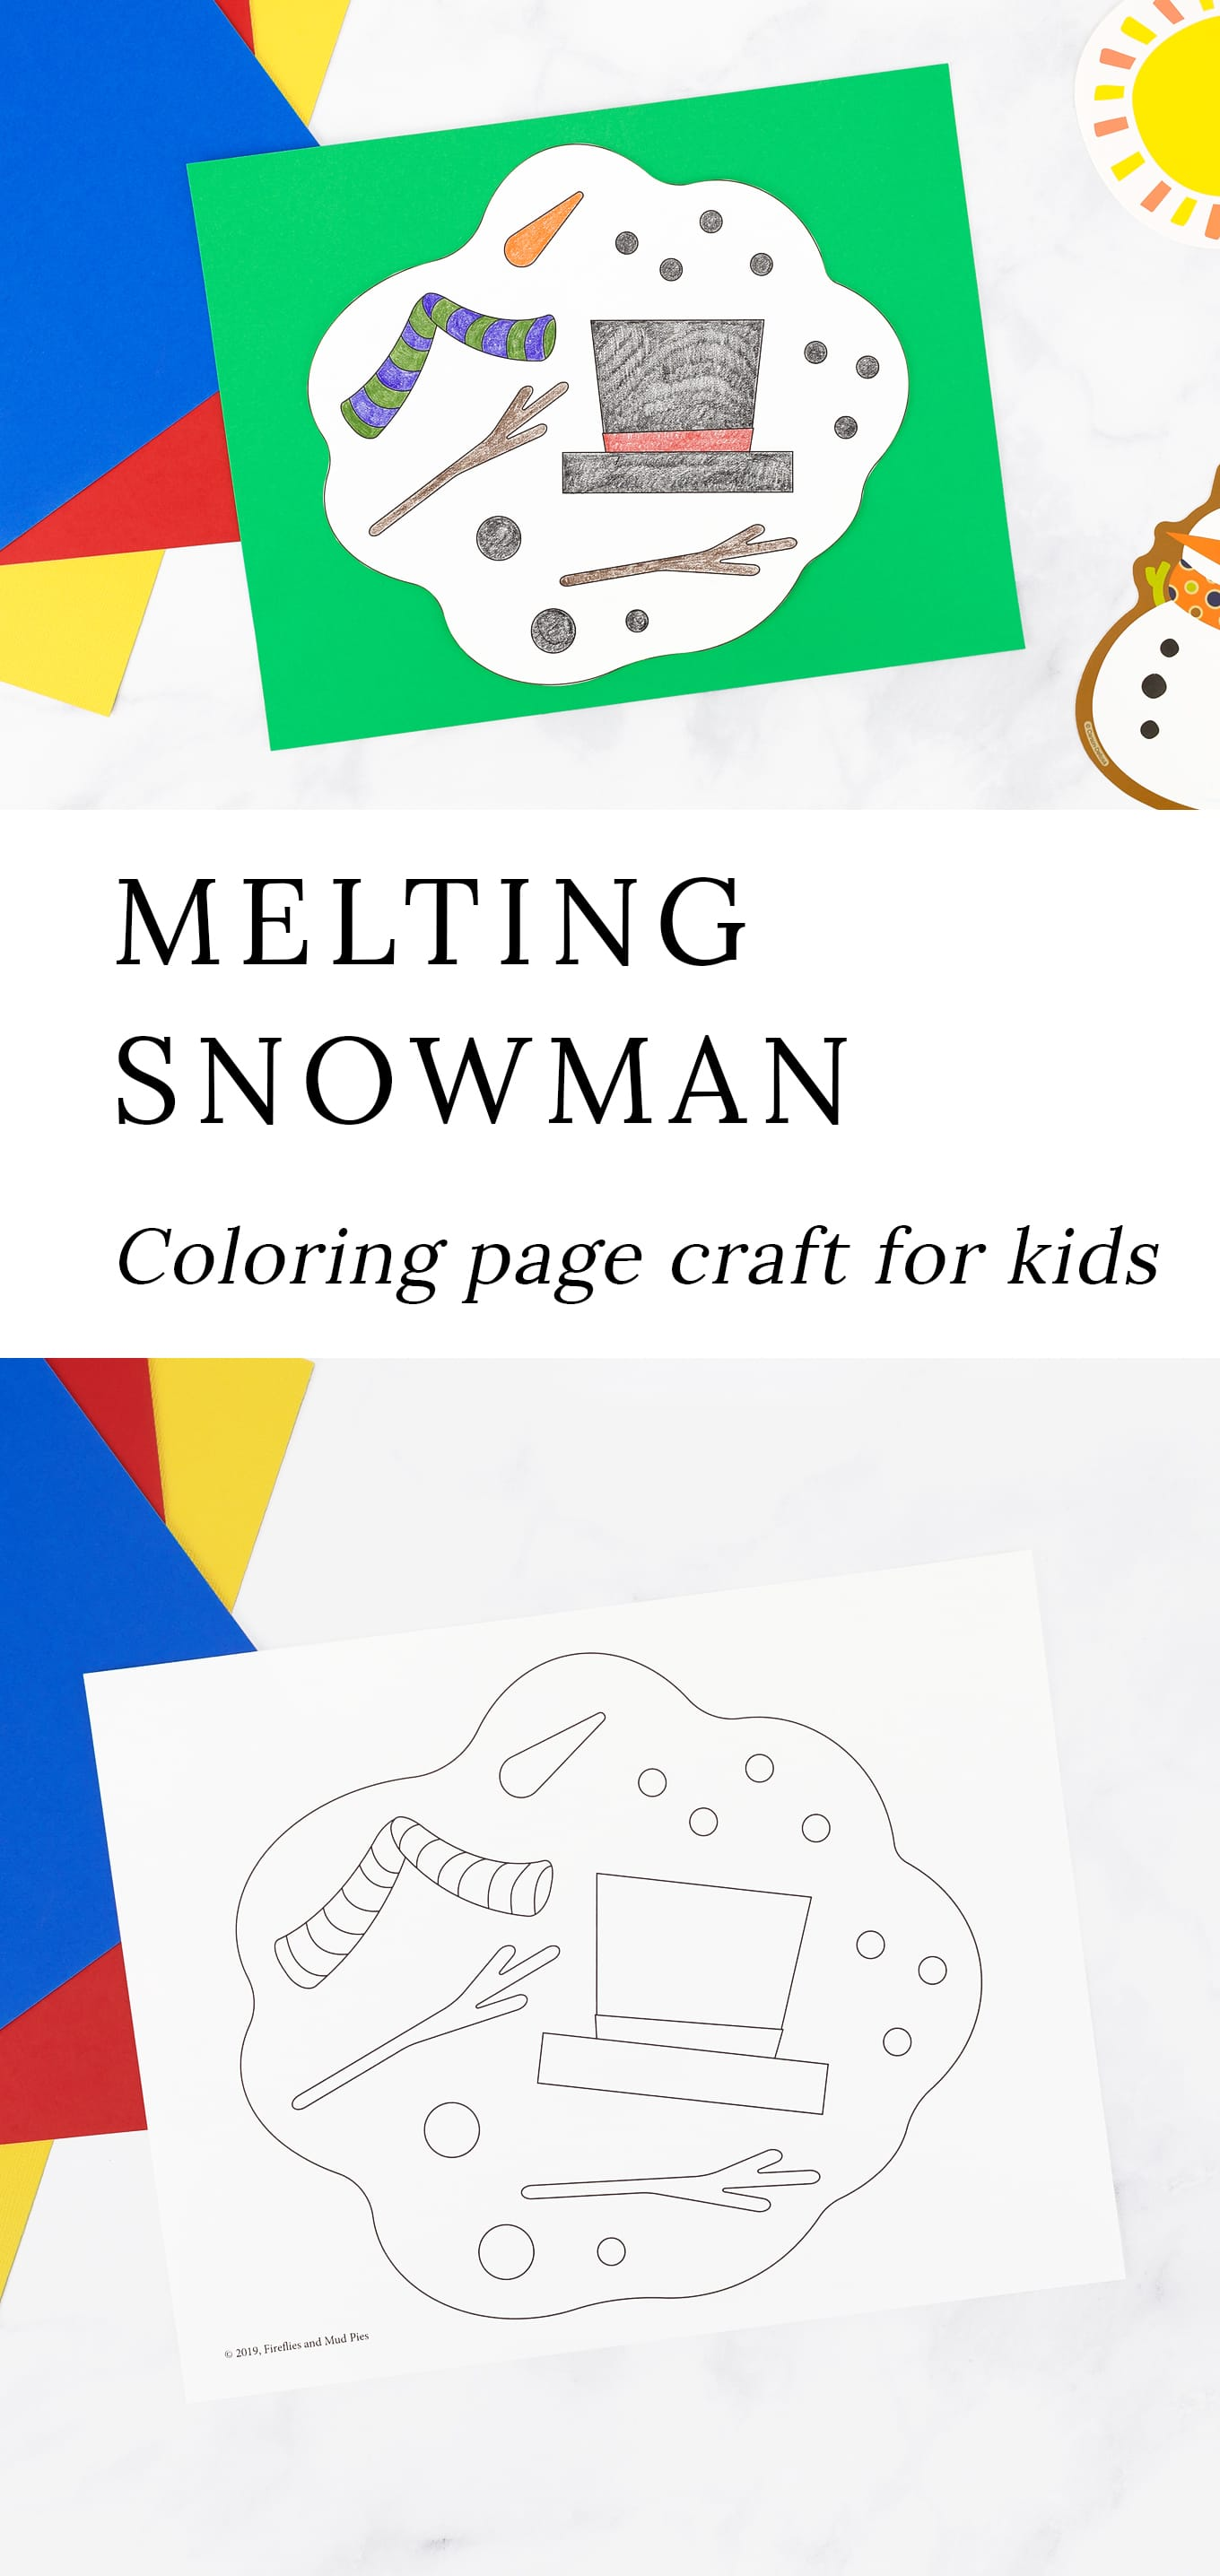 This free printable Melting Snowman Coloring Page for kids is perfect for home, school, or community programs, such as library storytime. It's the perfect coloring page for the late winter cycle of melting and fresh snow! Pair this craft with books about winter or spring, a melting snowman writing prompt, or searching for signs of spring on a late winter nature walk. via @firefliesandmudpies